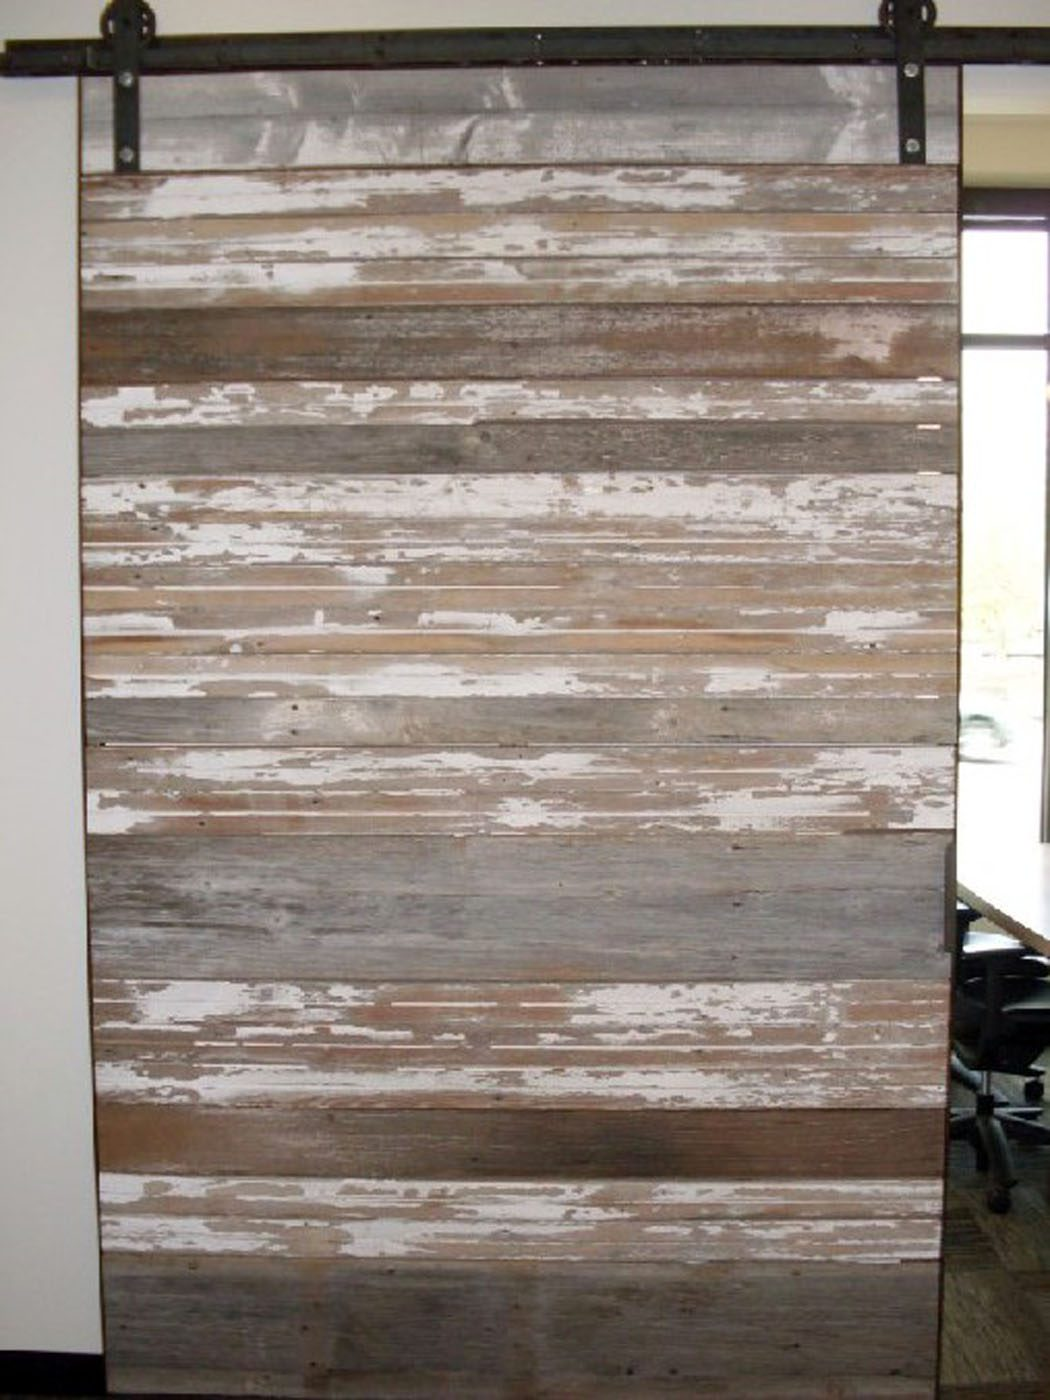 Reclaimed Painted Wood Siding Example